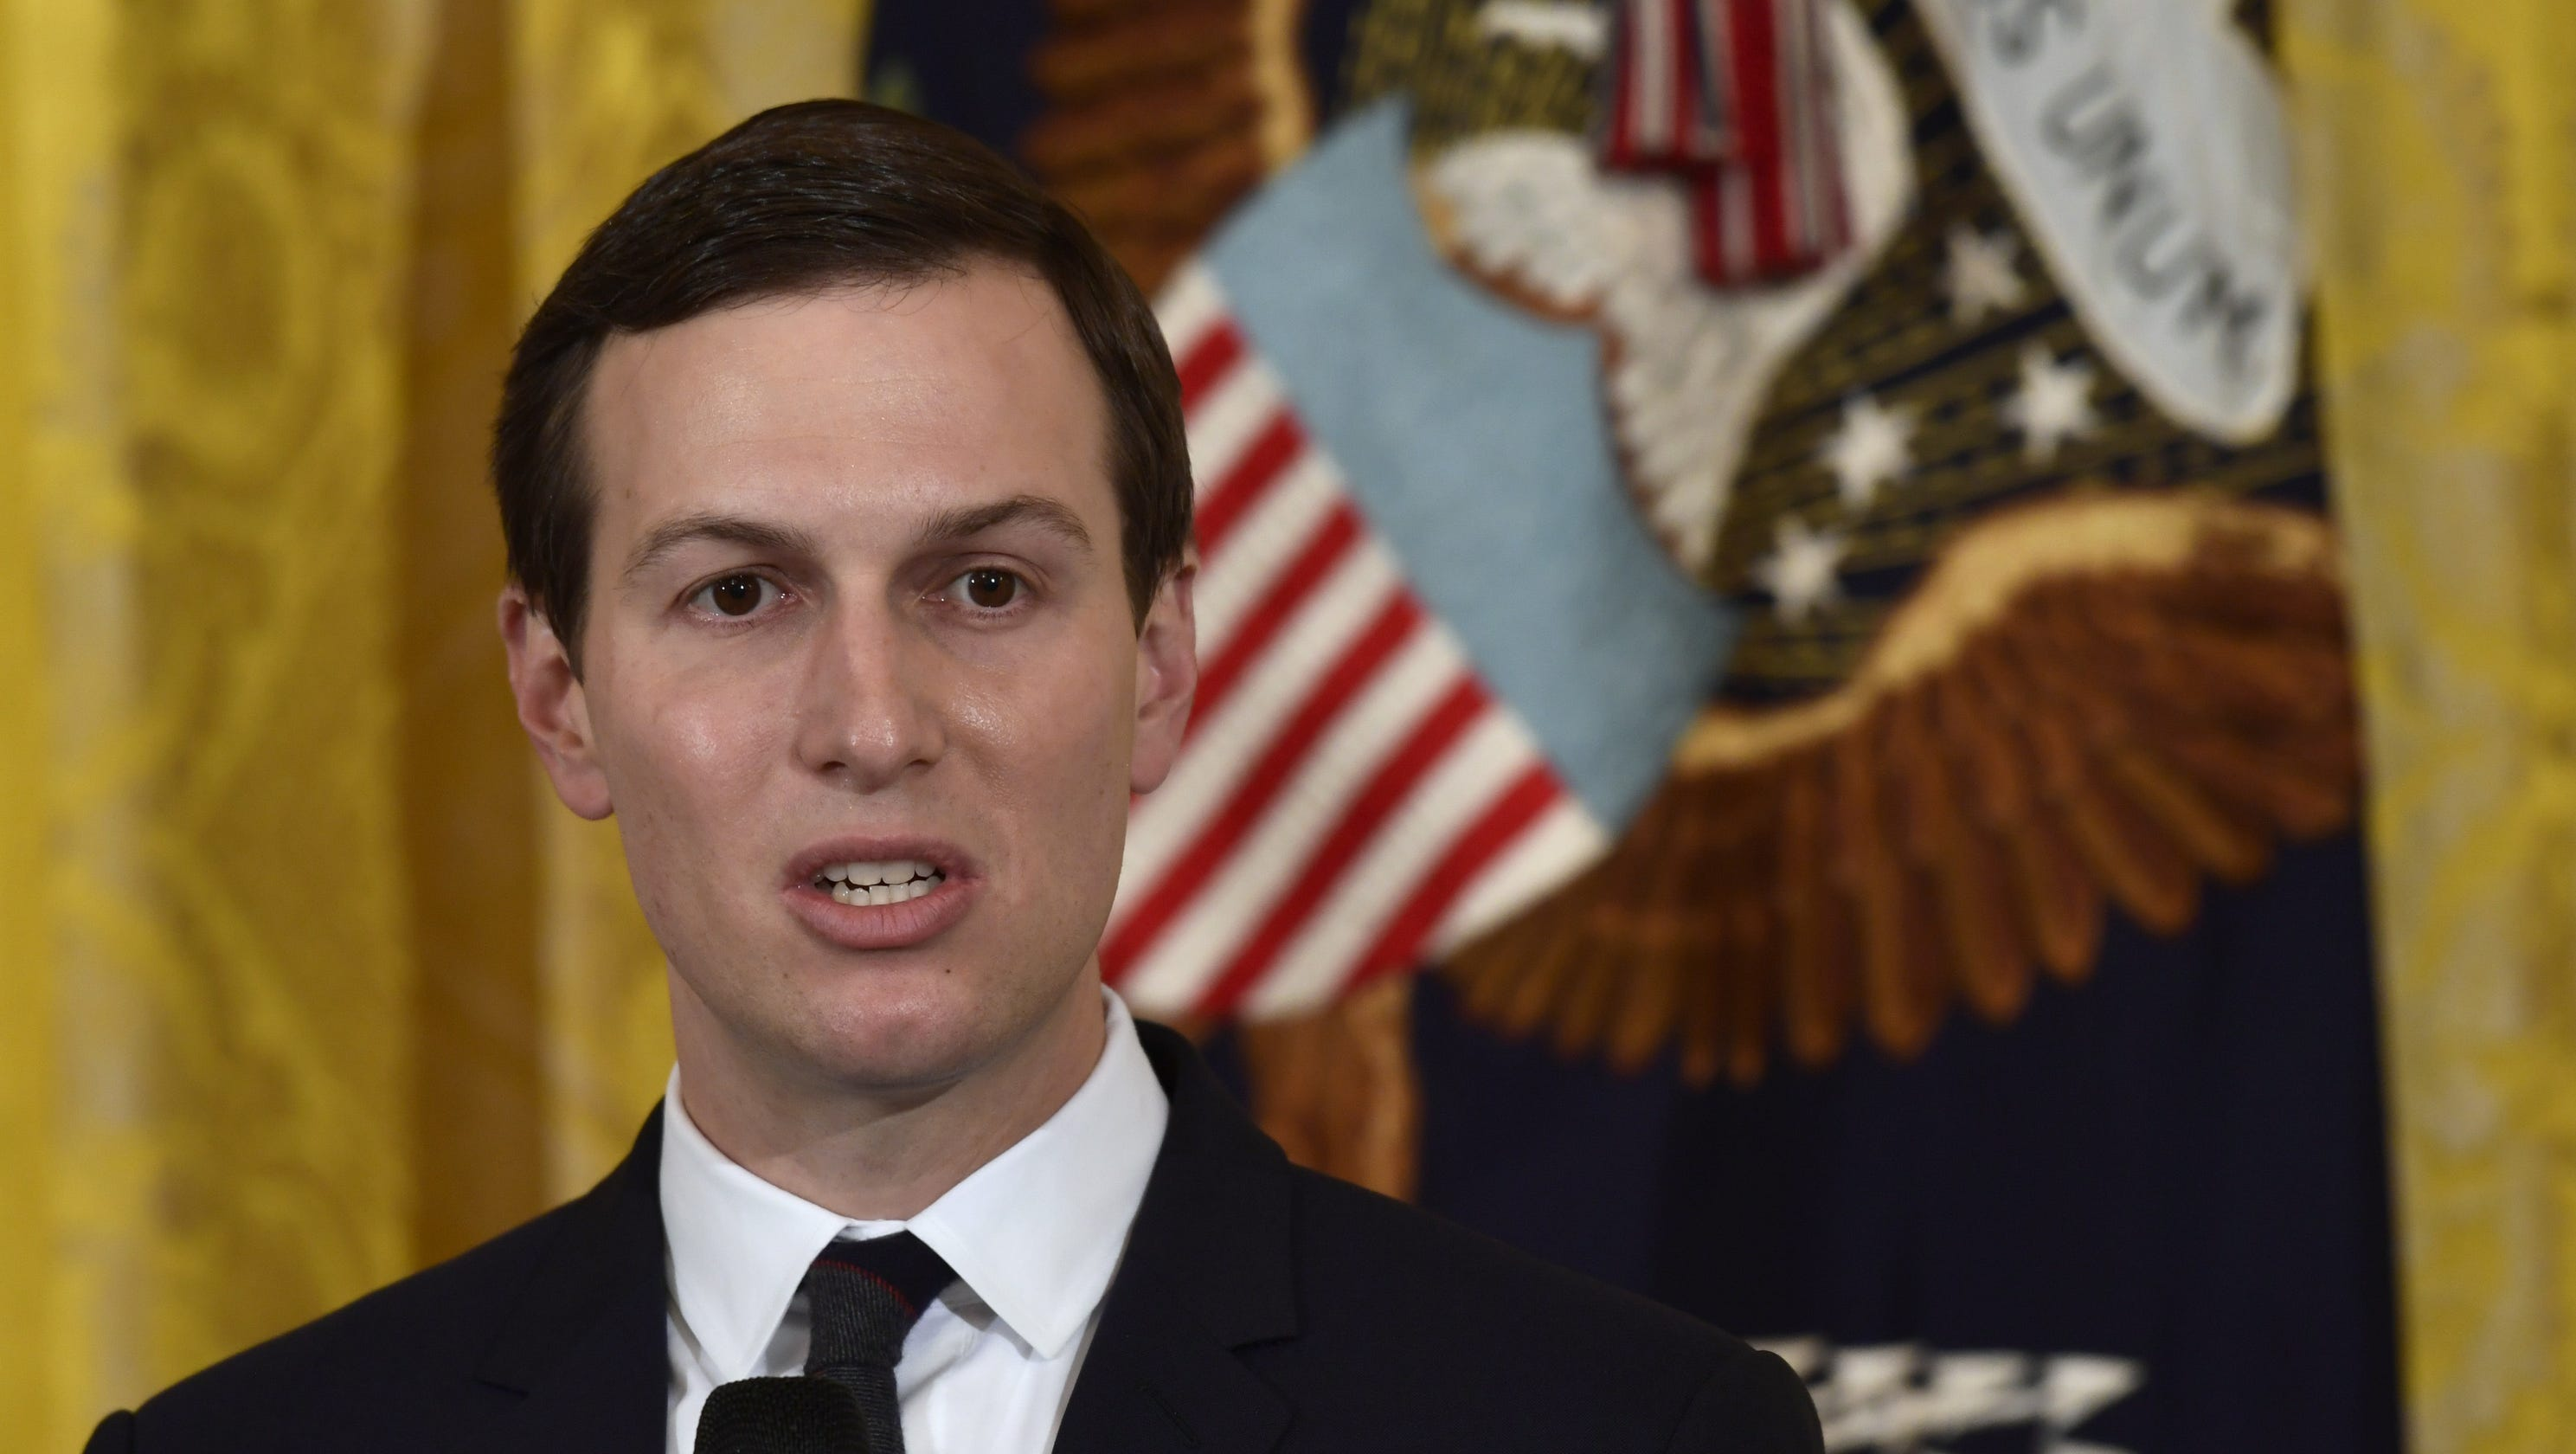 Jared Kushner uses WhatsApp, encrypted messaging, to conduct 'official business,' Dems say